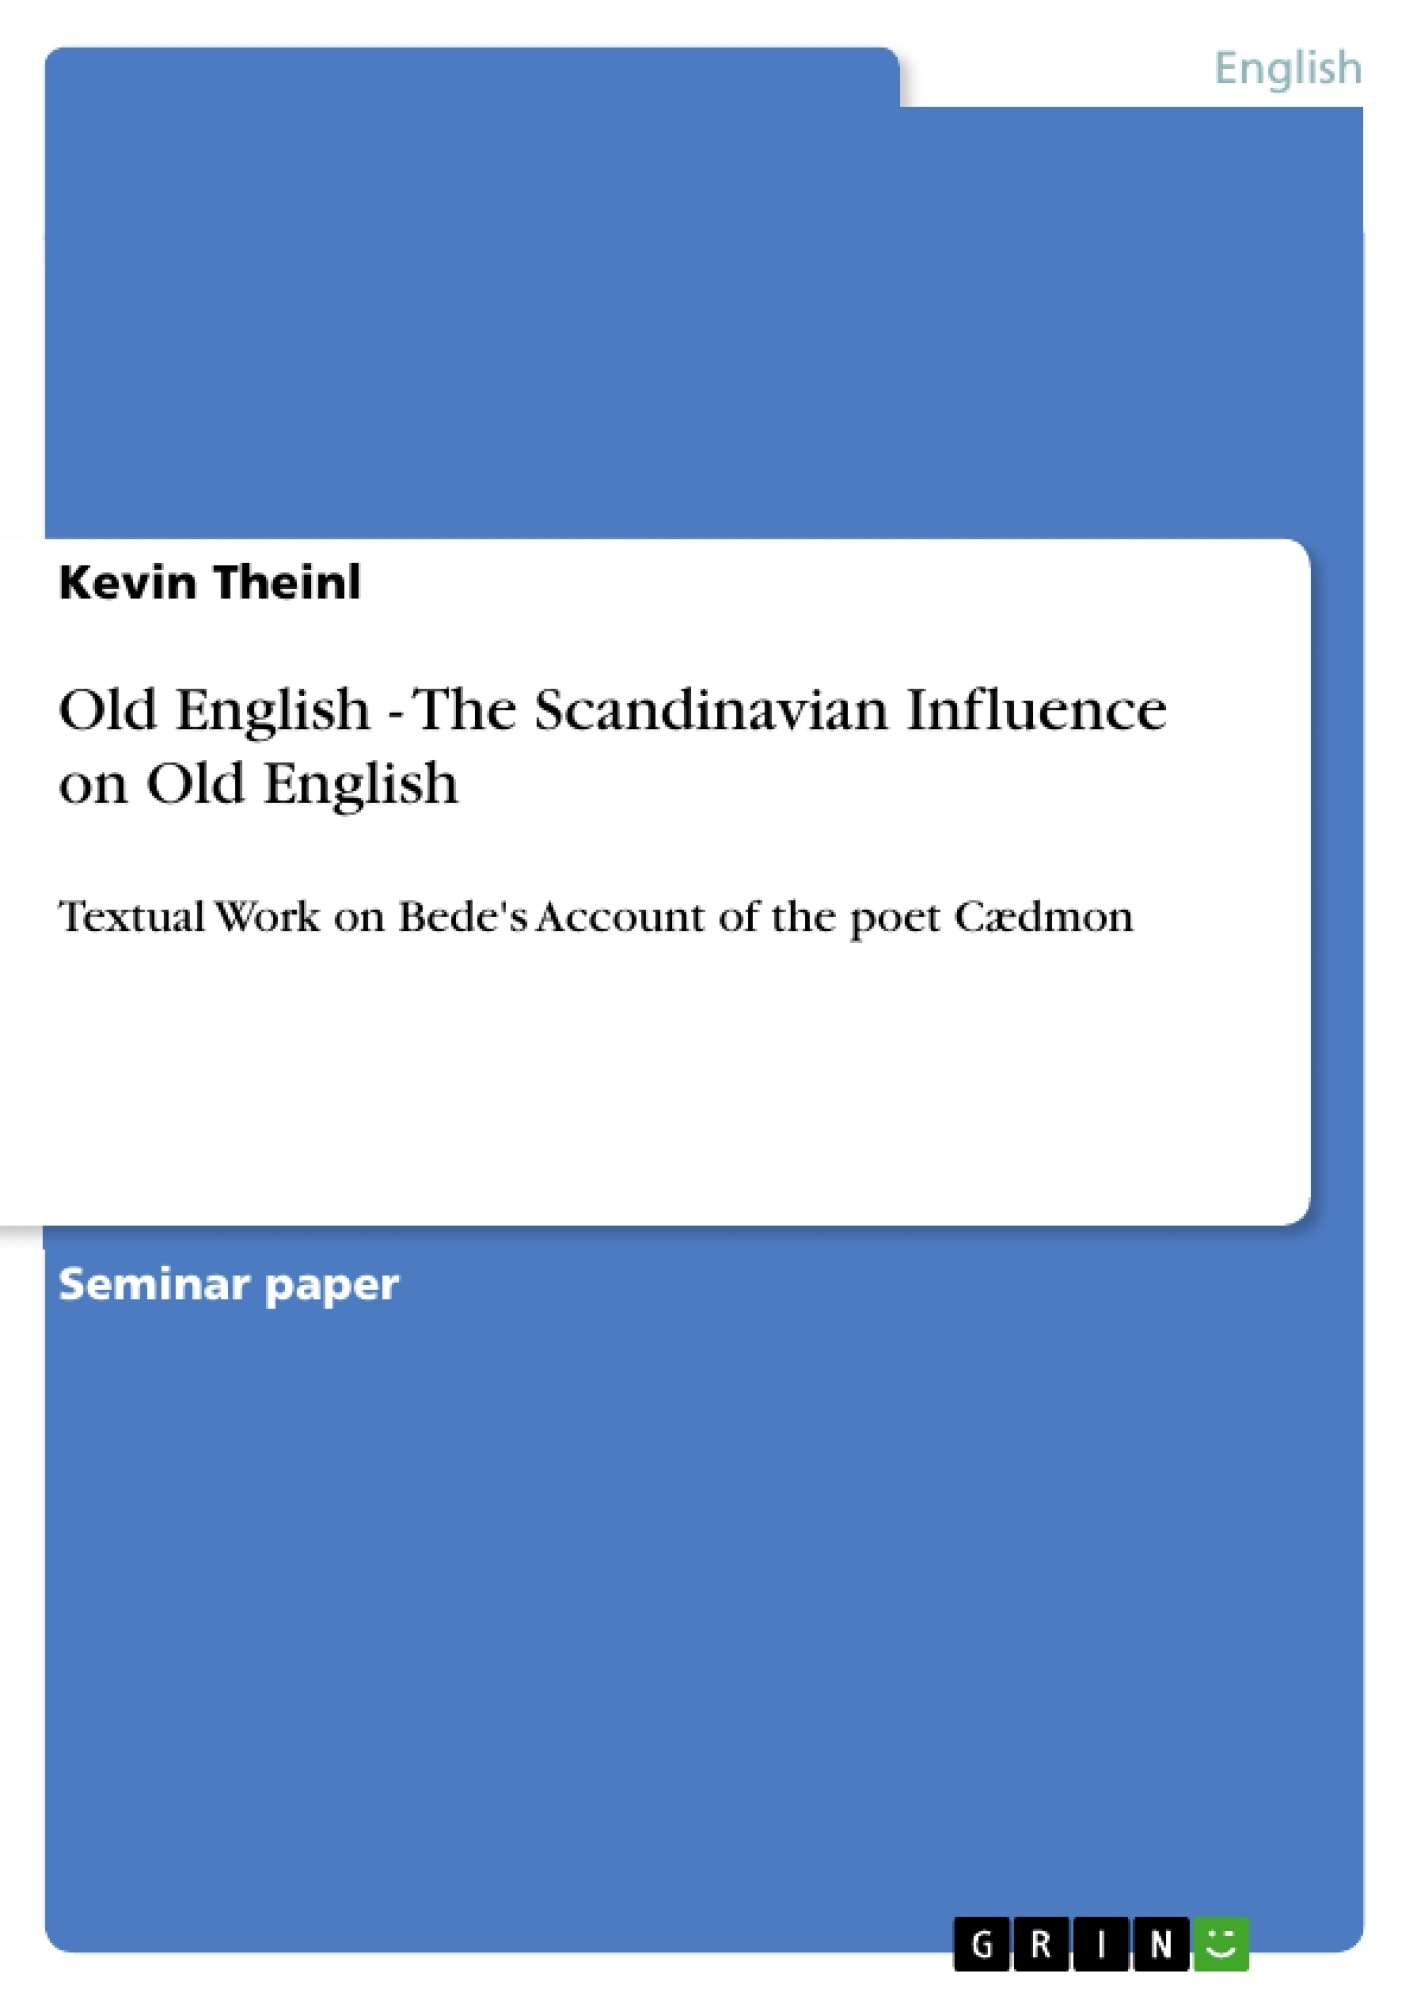 Title: Old English - The Scandinavian Influence on Old English